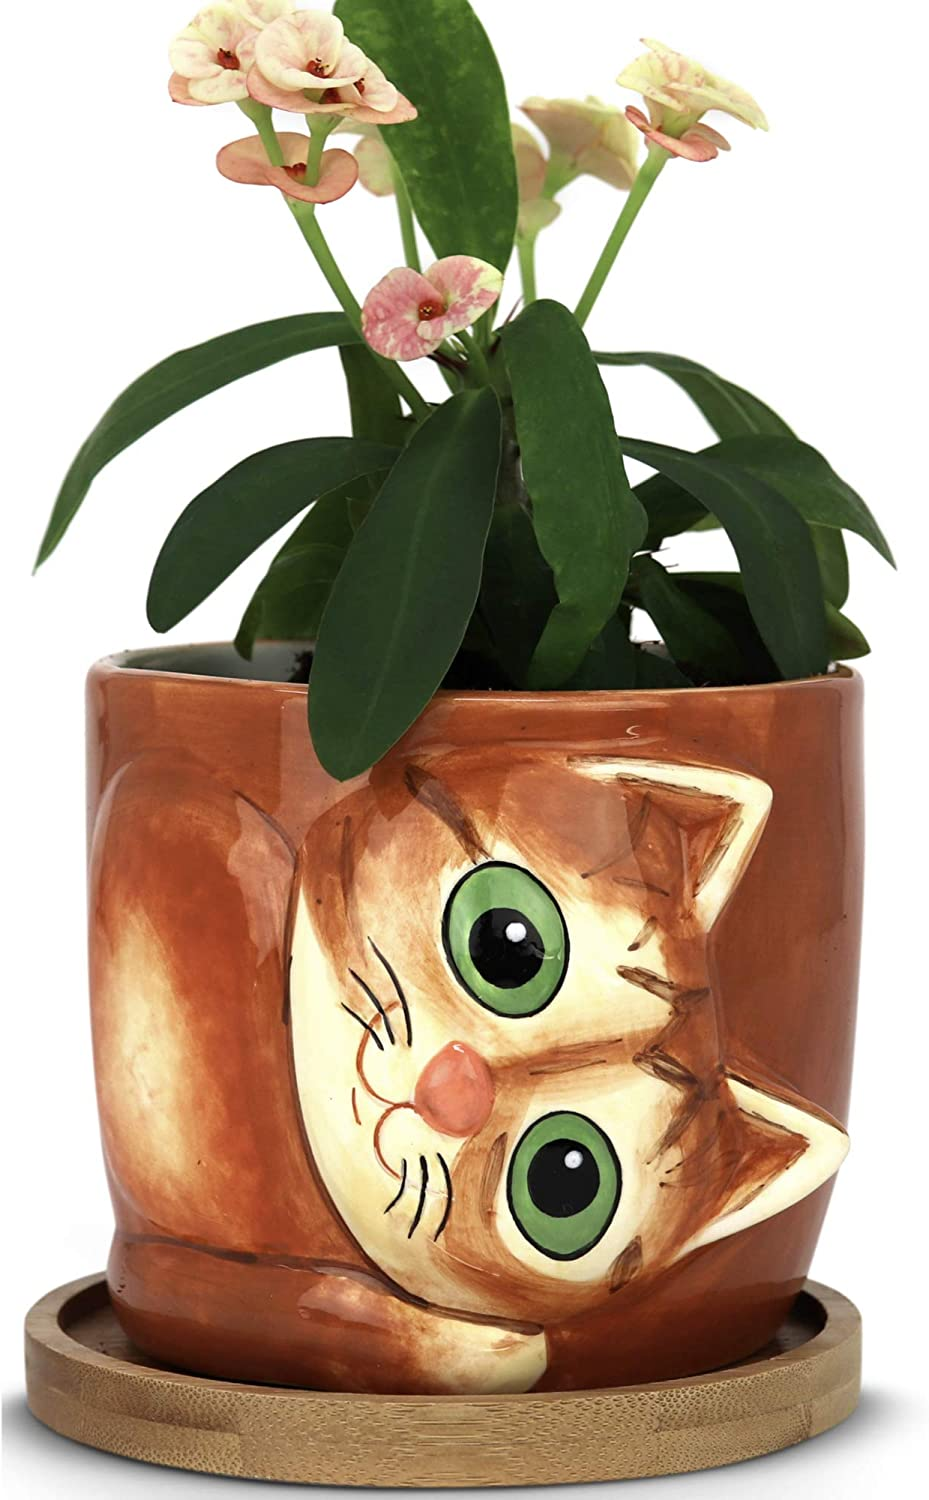 Window Garden Animal Planters - Large Kitty Pot (Sugar) Purrfect for Indoor Live House Plants, Succulents, Flowers and Herbs, Super Cute Planter Gift for Cat Lovers, Office, Christmas.